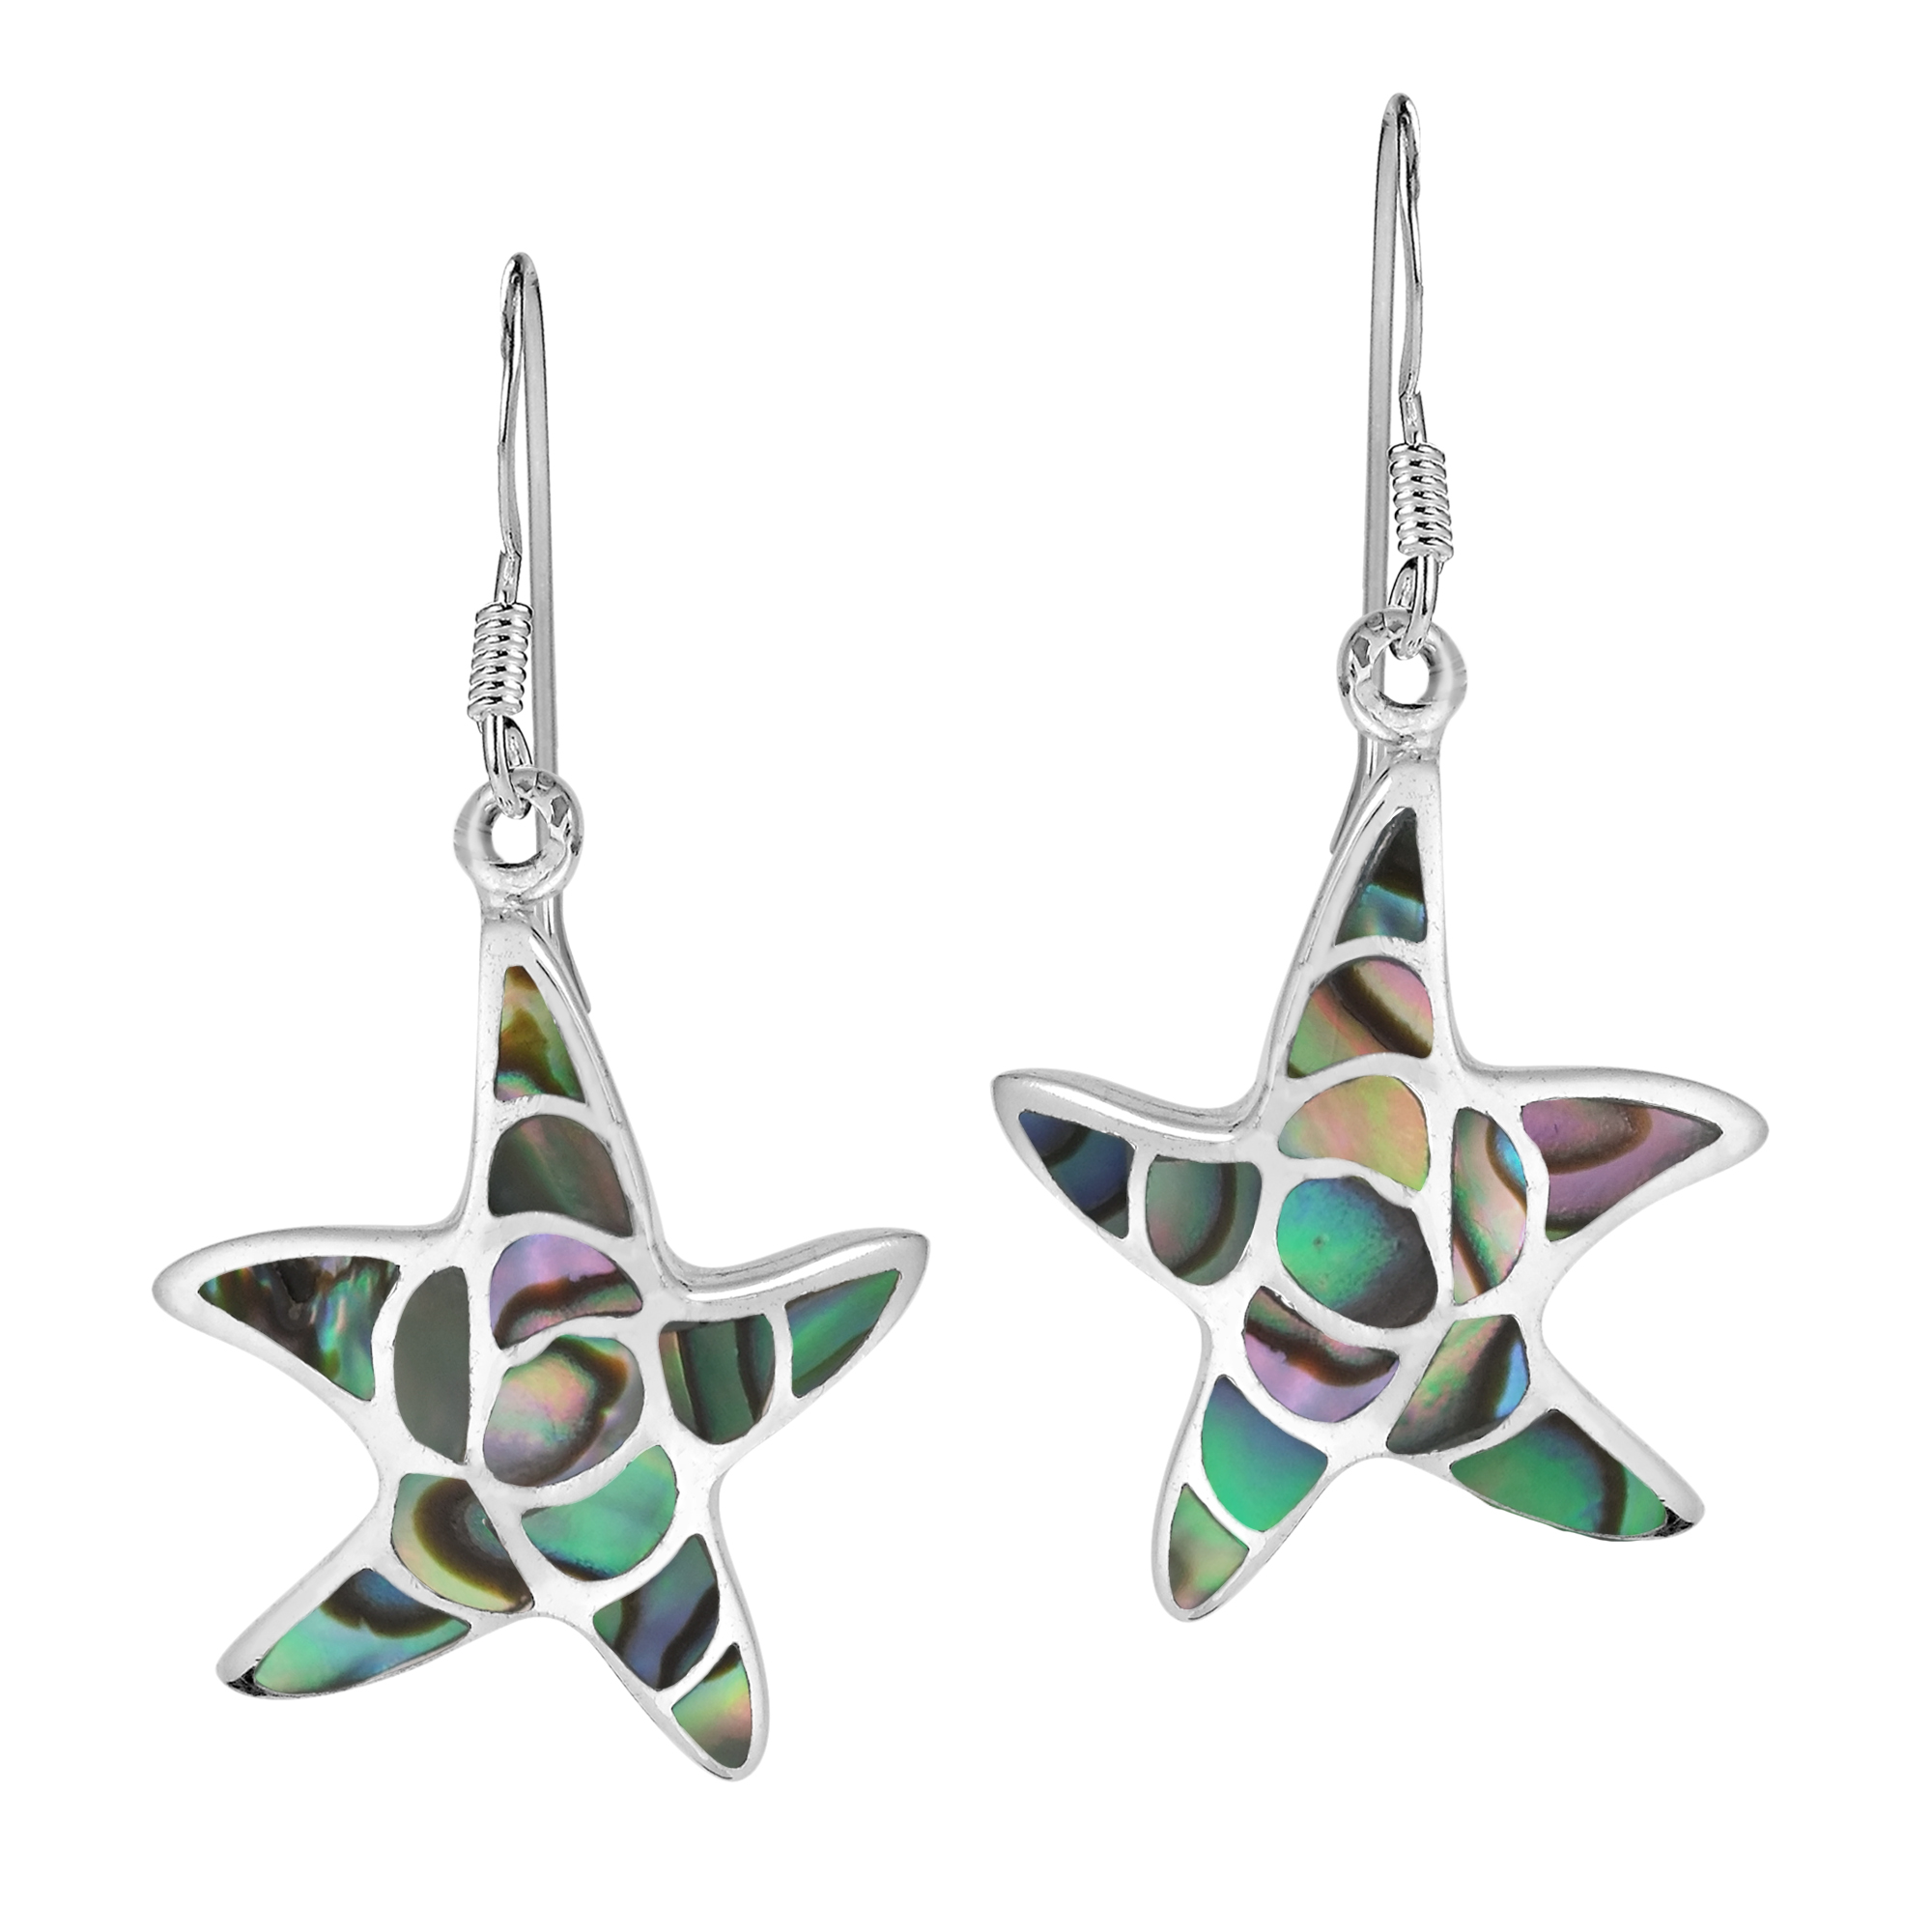 Eammano From Thailand Handcrafted This Exquisite Sterling Silver Earring Set The Earrings Feature Starfish Inlaid With S Or Stone